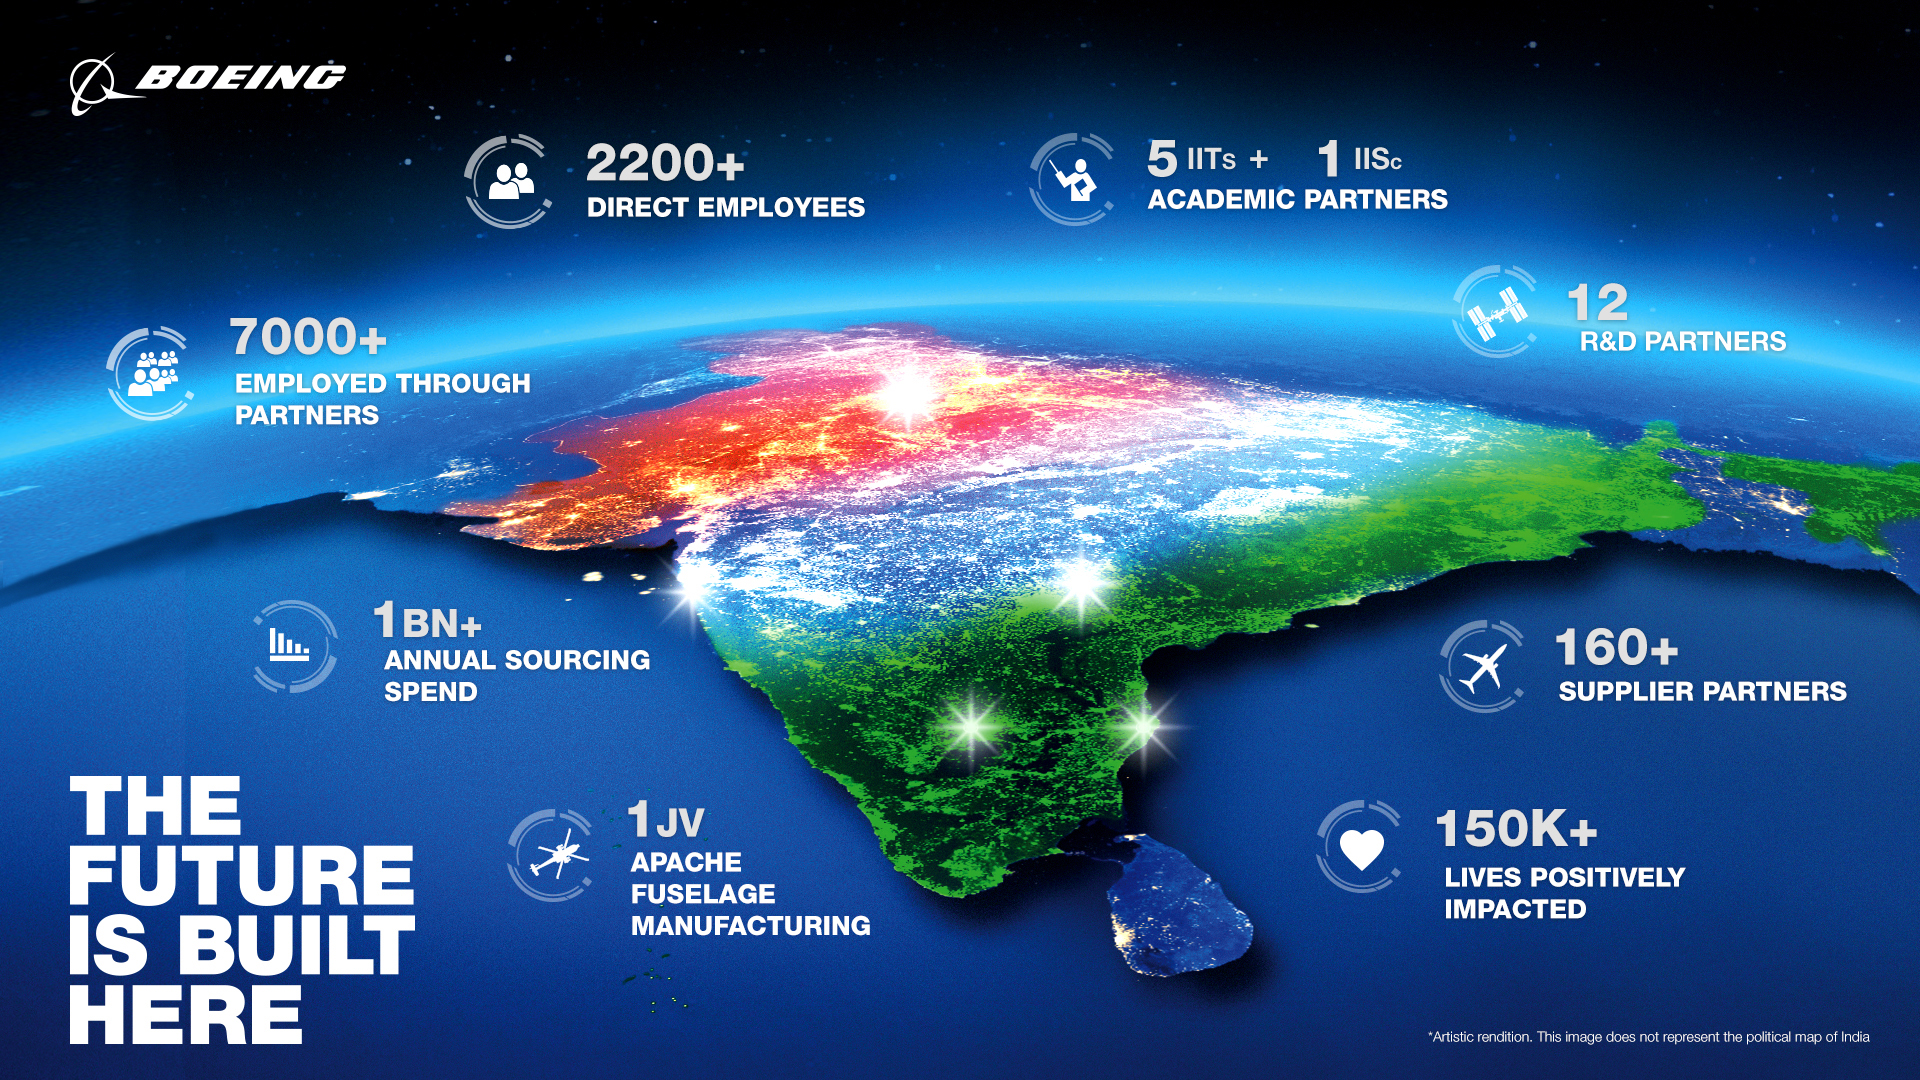 Boeing - a Responsible Business Leader